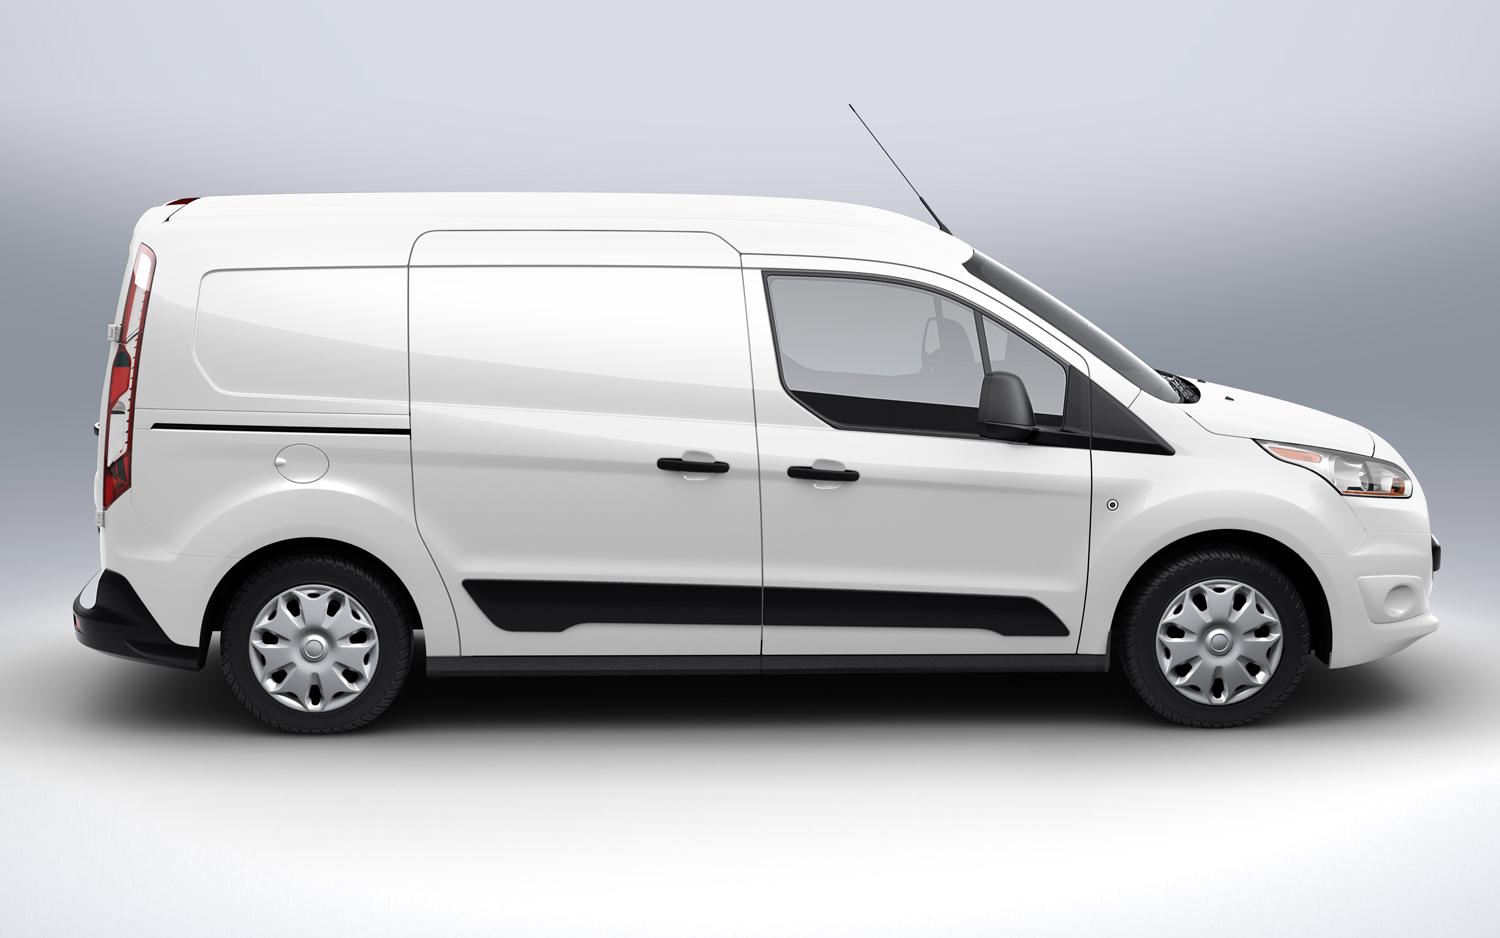 Ford Transit Connect Van Side View Wallpapers free download image